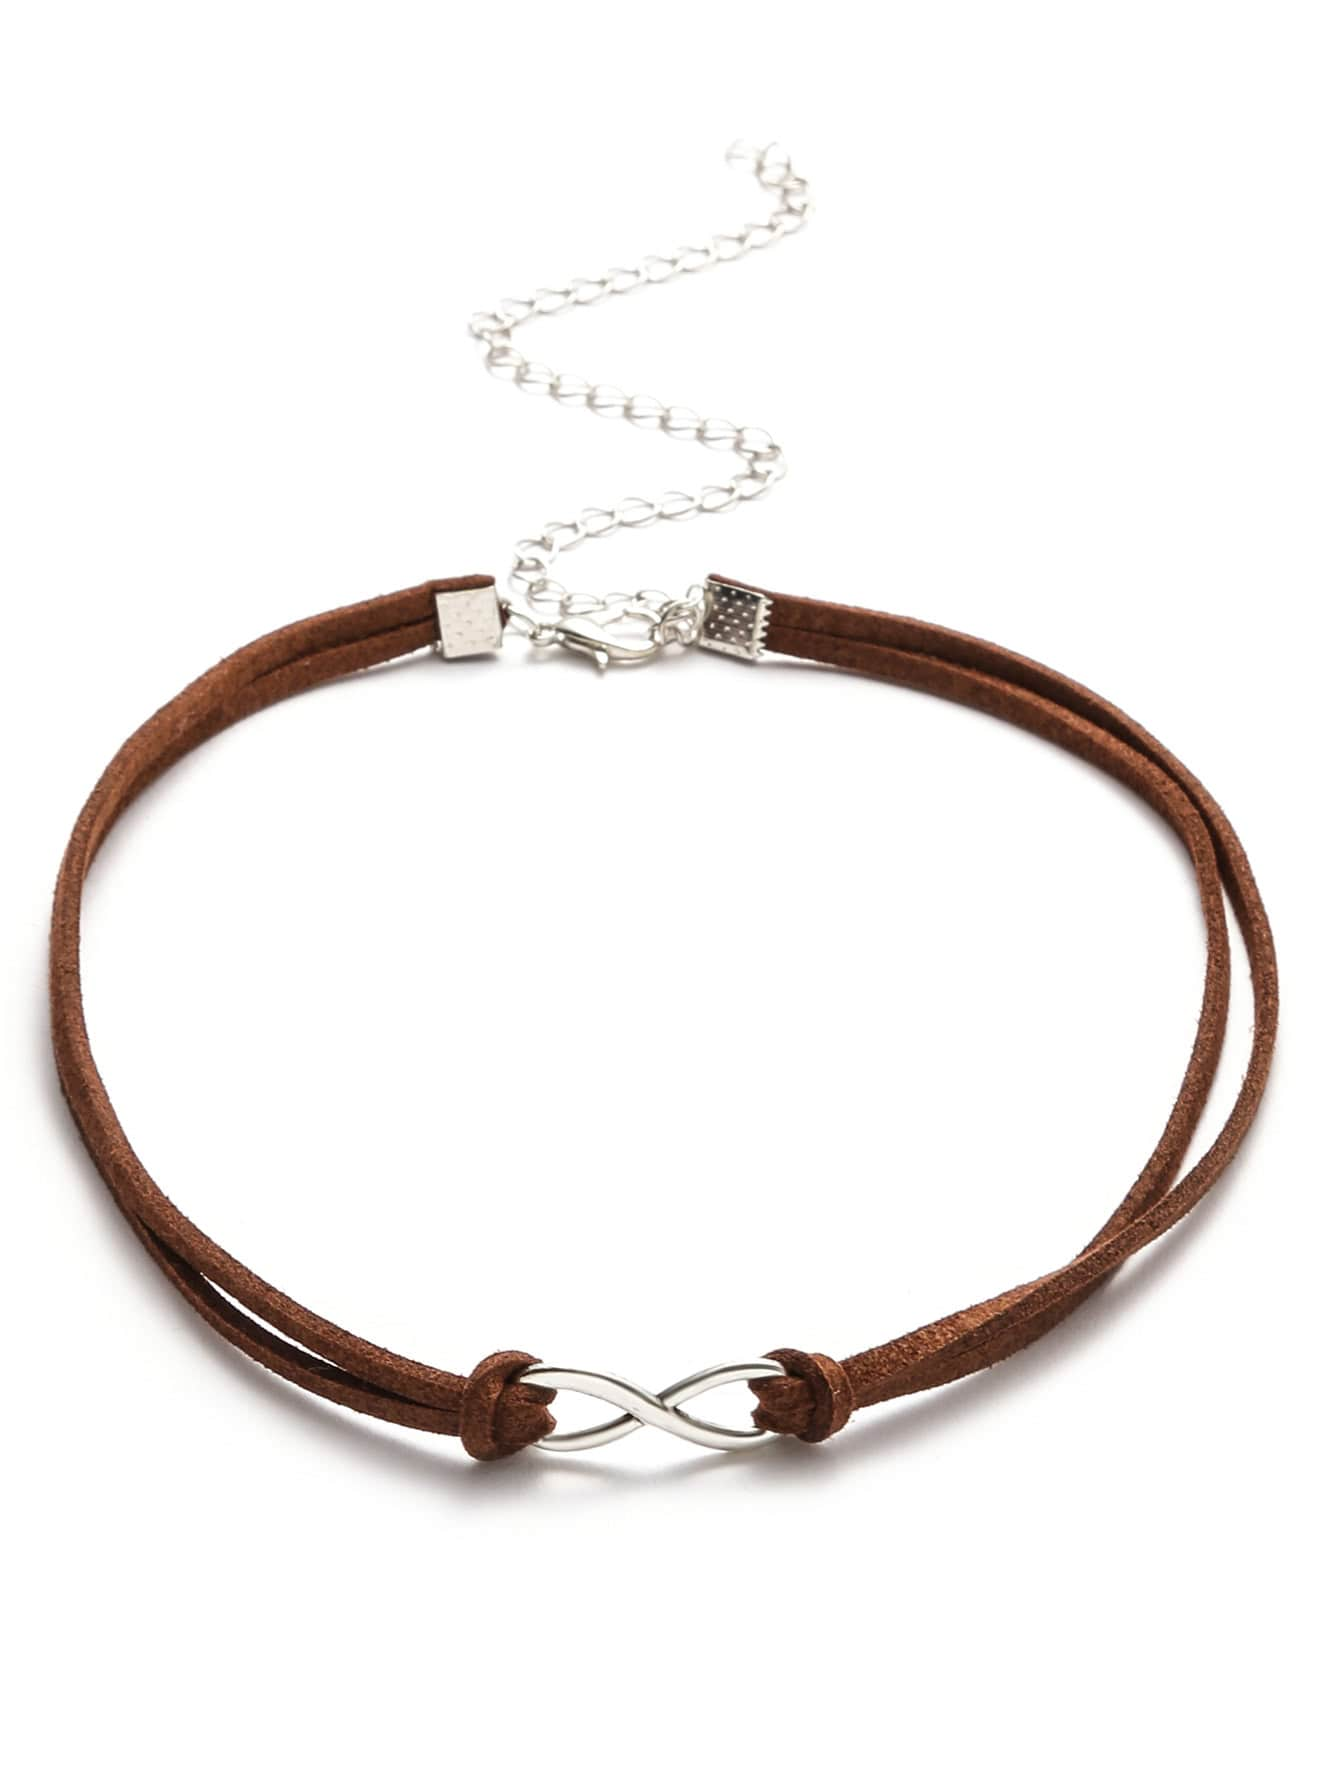 Coffee Double Layer Metal Charm Suede ChokerCoffee Double Layer Metal Charm Suede Choker<br><br>color: Coffee<br>size: None